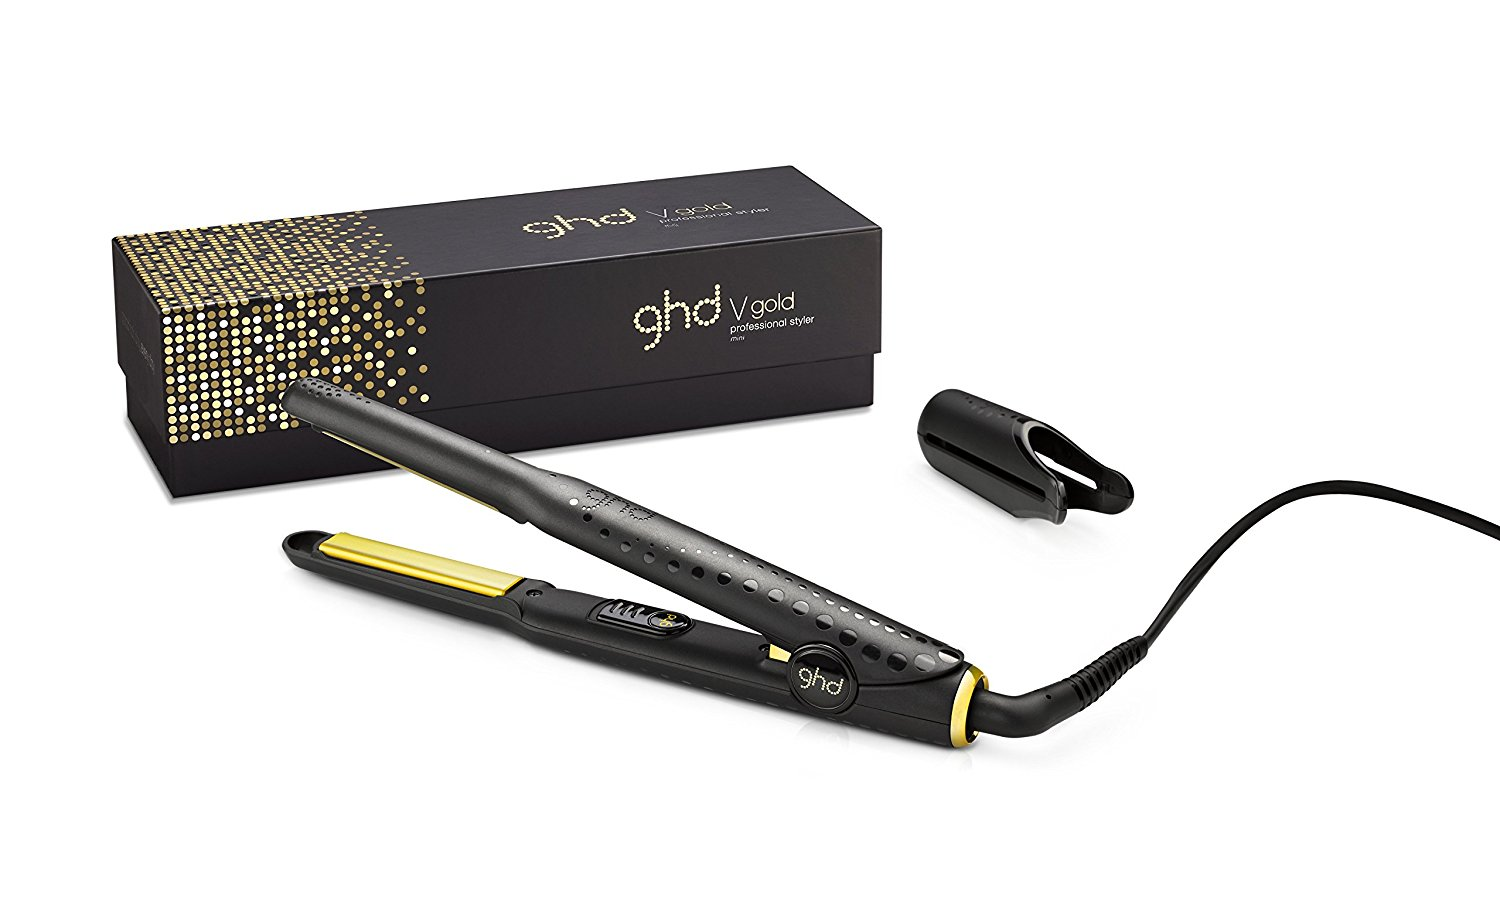 Ghd Gold Mini Styler Mini Style review